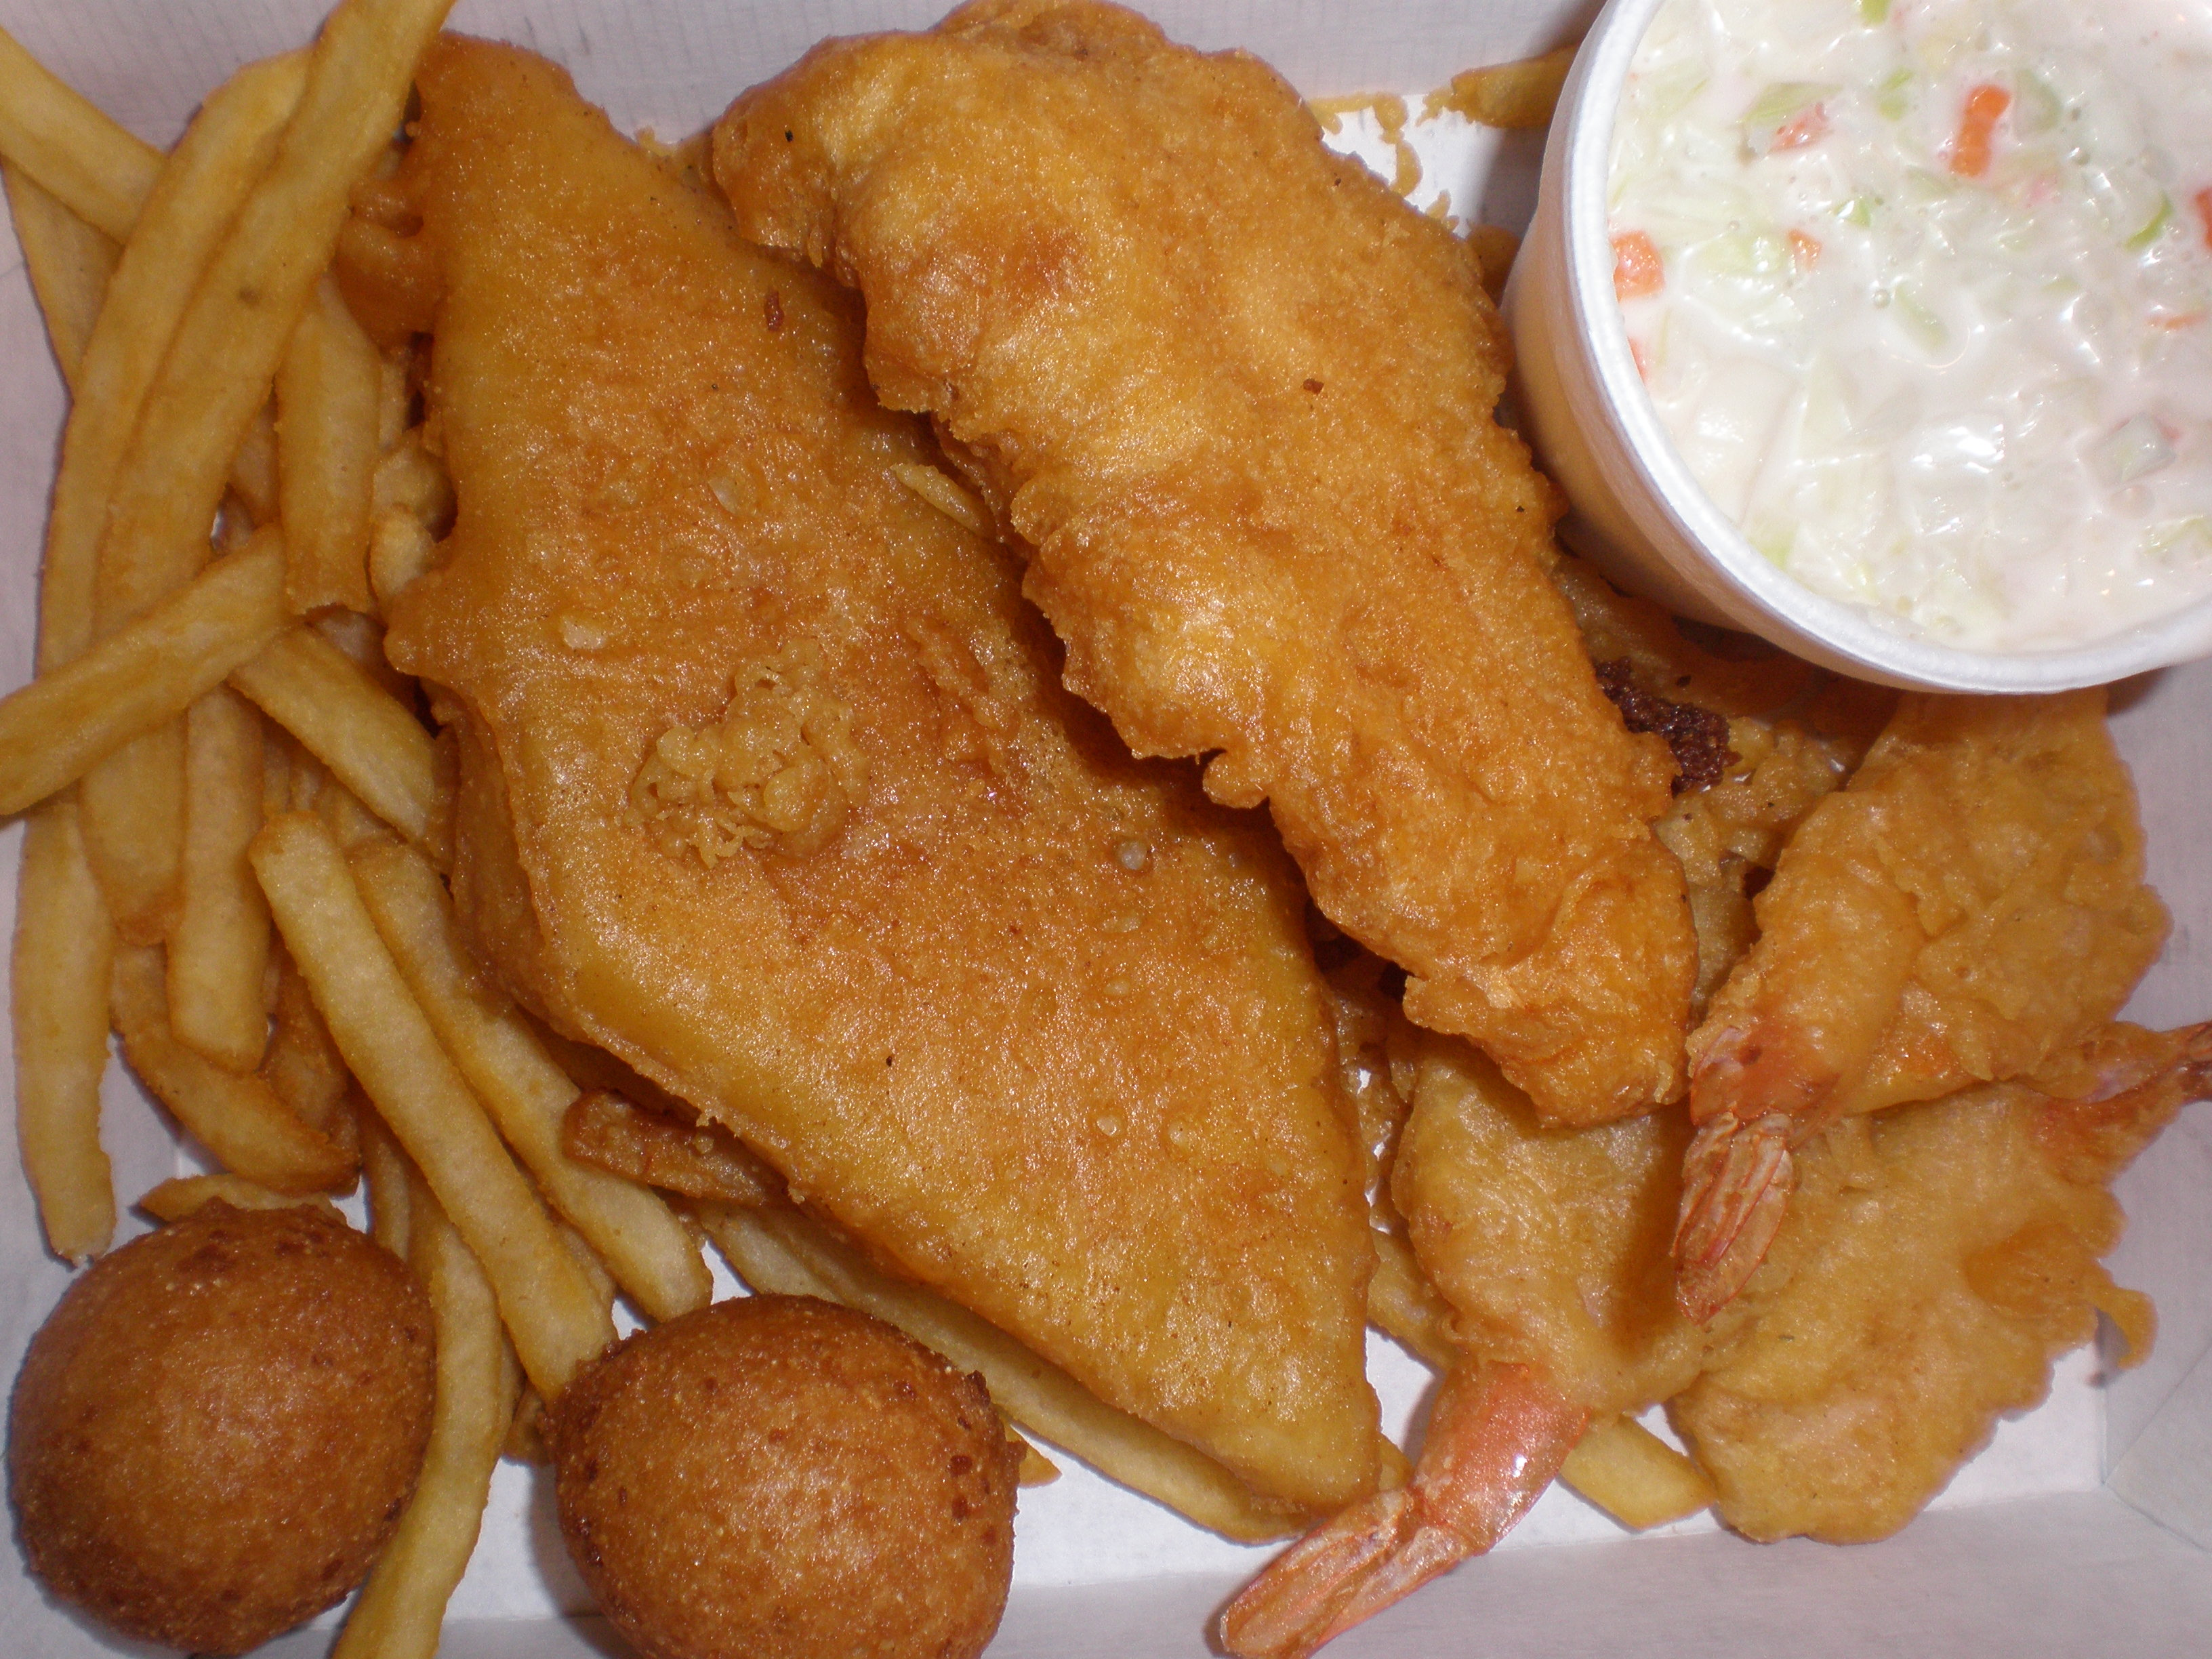 Grains more are trans fats shrinking your brain for Long john silver fish and chips